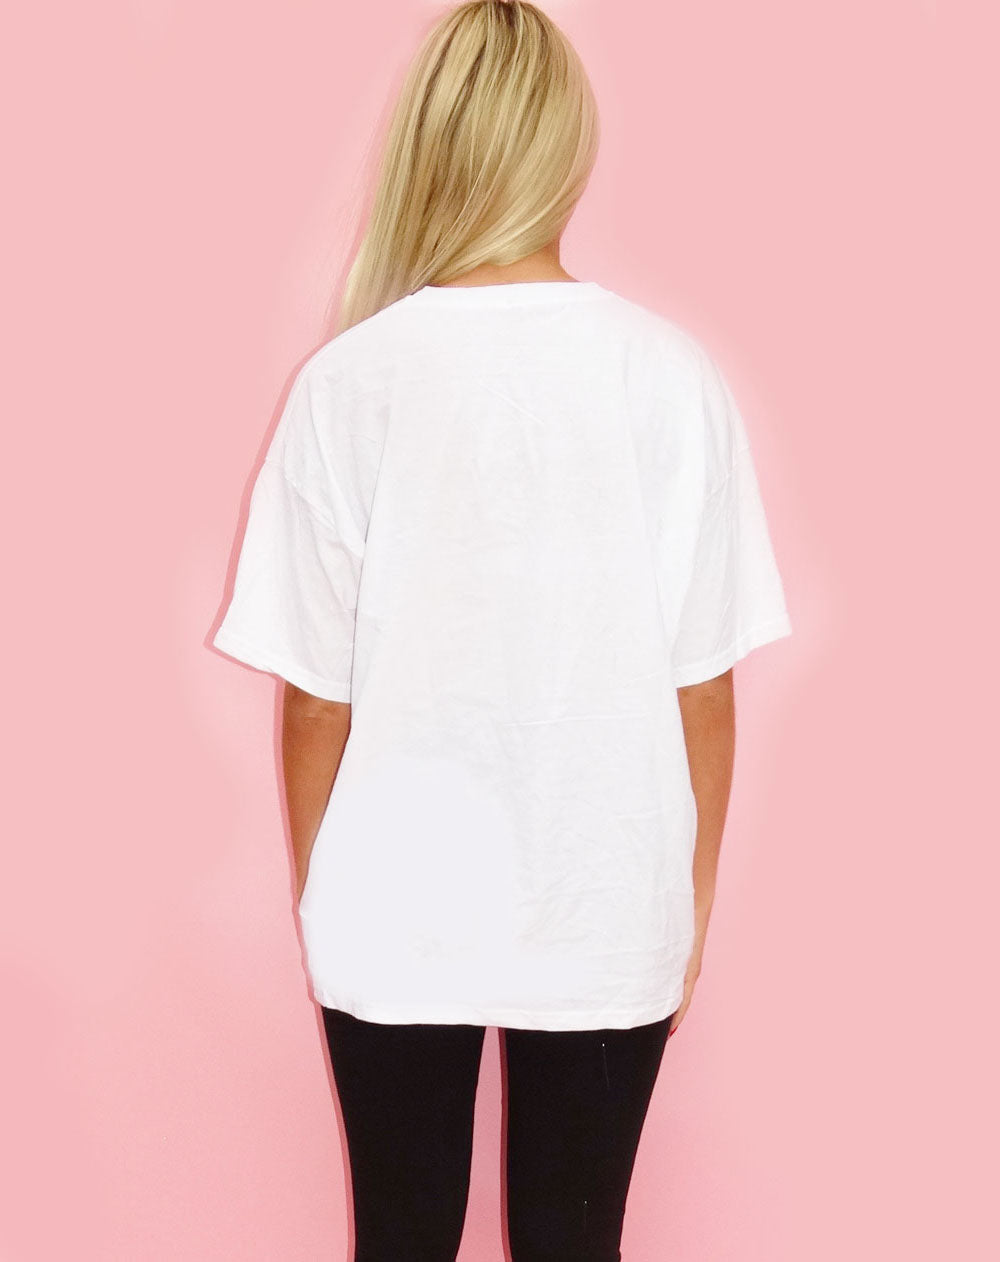 White Tshirt with Leopard Heart in Monochrome